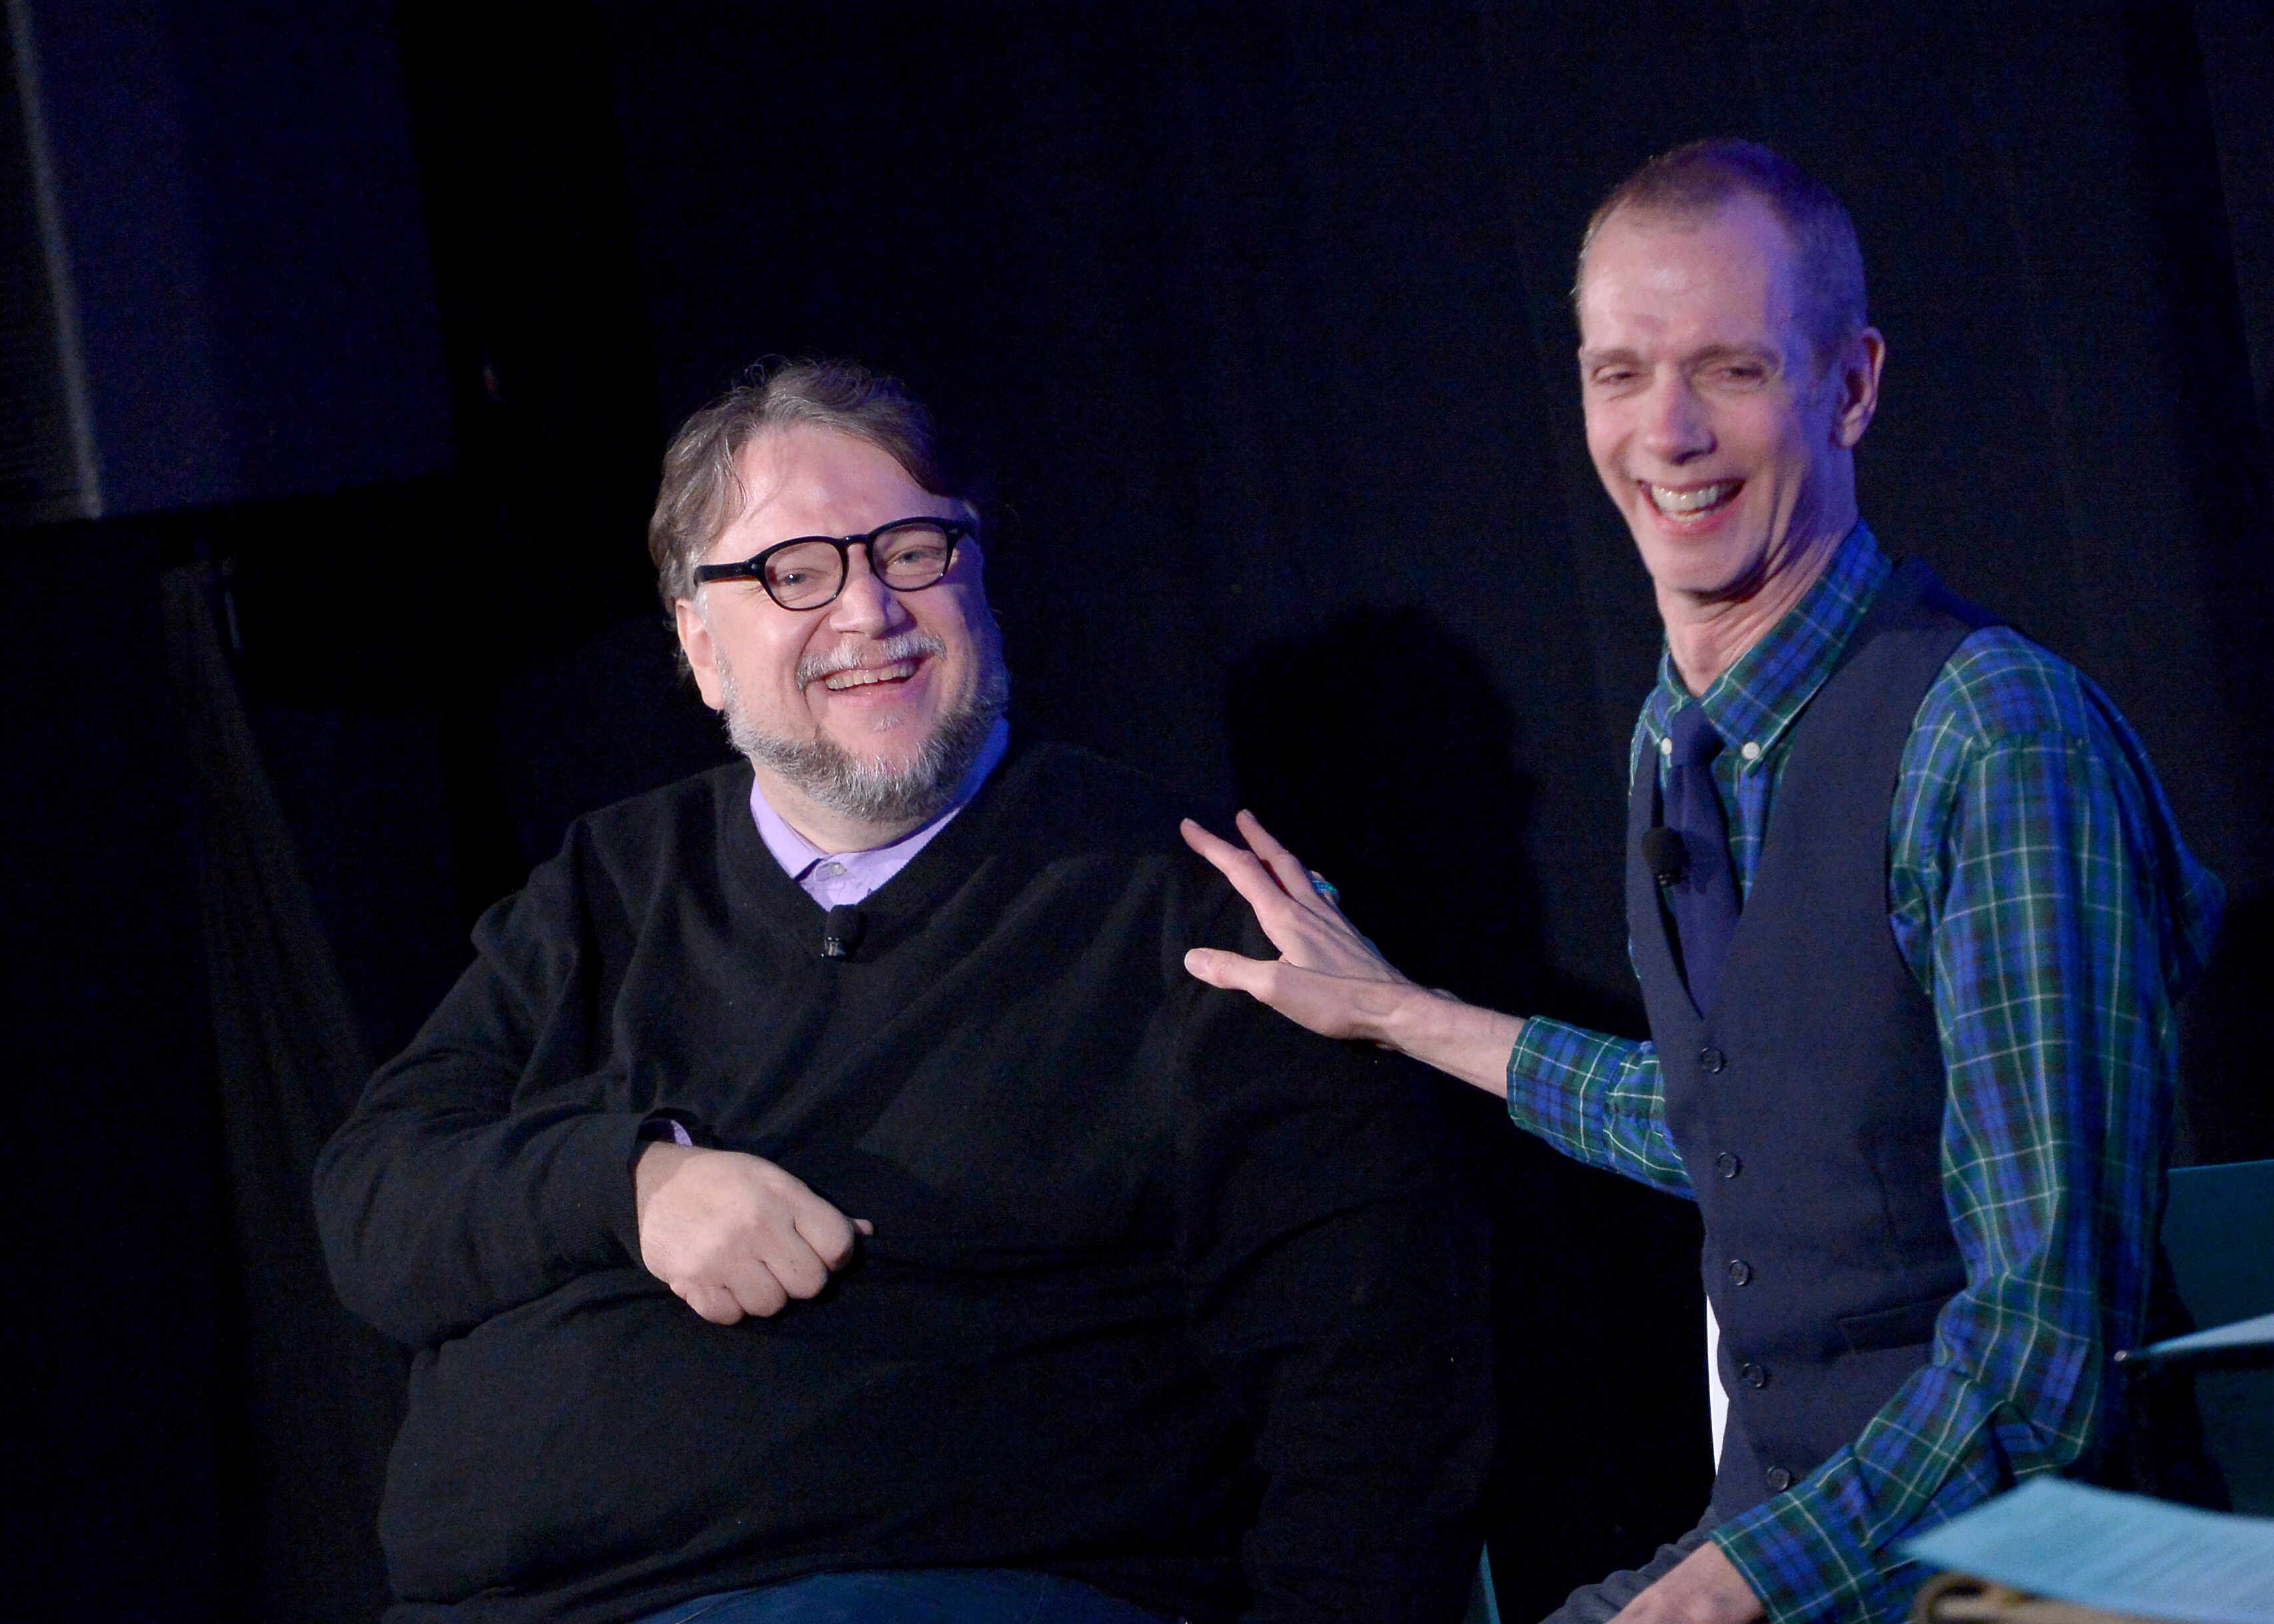 HOLLYWOOD, CA - NOVEMBER 18: Filmmaker Guillermo del Toro (L) and actor Doug Jones speak onstage during the 'Shape of Water' event, part of Vulture Festival LA Presented by AT&T at Hollywood Roosevelt Hotel on November 18, 2017 in Hollywood, California. (Photo by Charley Gallay/Getty Images for Vulture Festival)